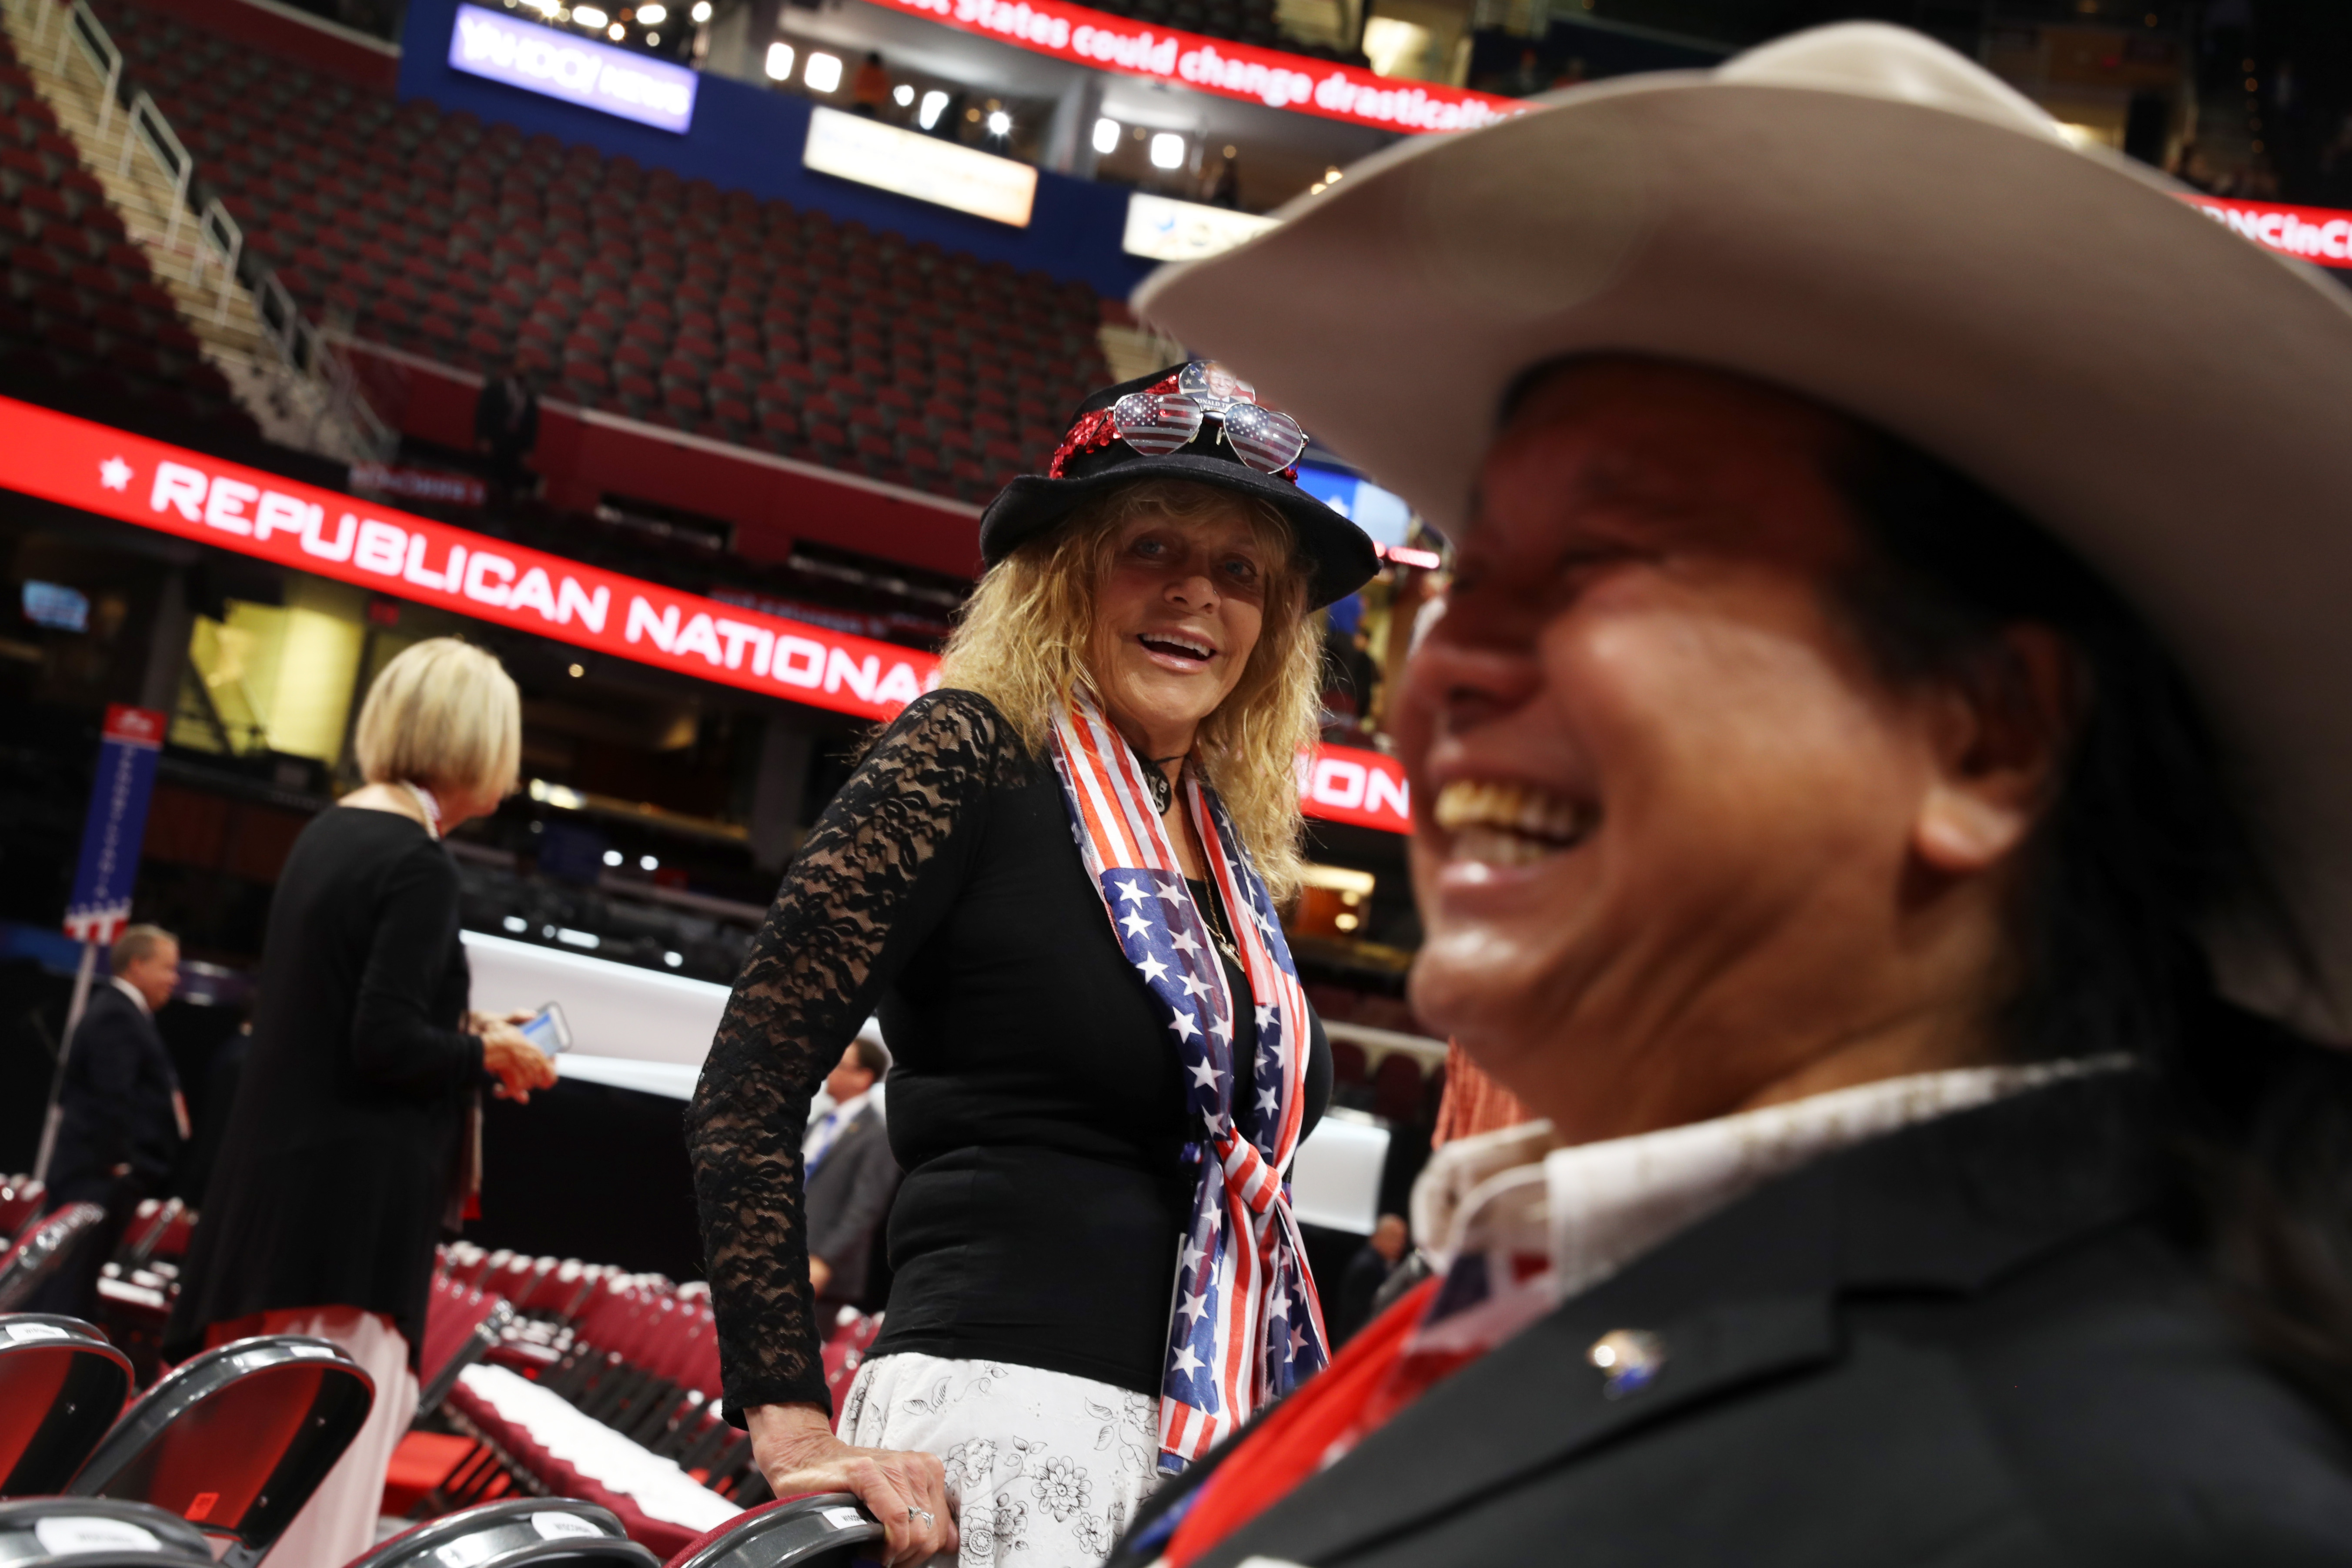 CLEVELAND, OH - JULY 18: Delegates arrive on the first day of the Republican National Convention on July 18, 2016 at the Quicken Loans Arena in Cleveland, Ohio. An estimated 50,000 people are expected in Cleveland, including hundreds of protesters and members of the media. The four-day Republican National Convention kicks off on July 18. (Photo by Joe Raedle/Getty Images)